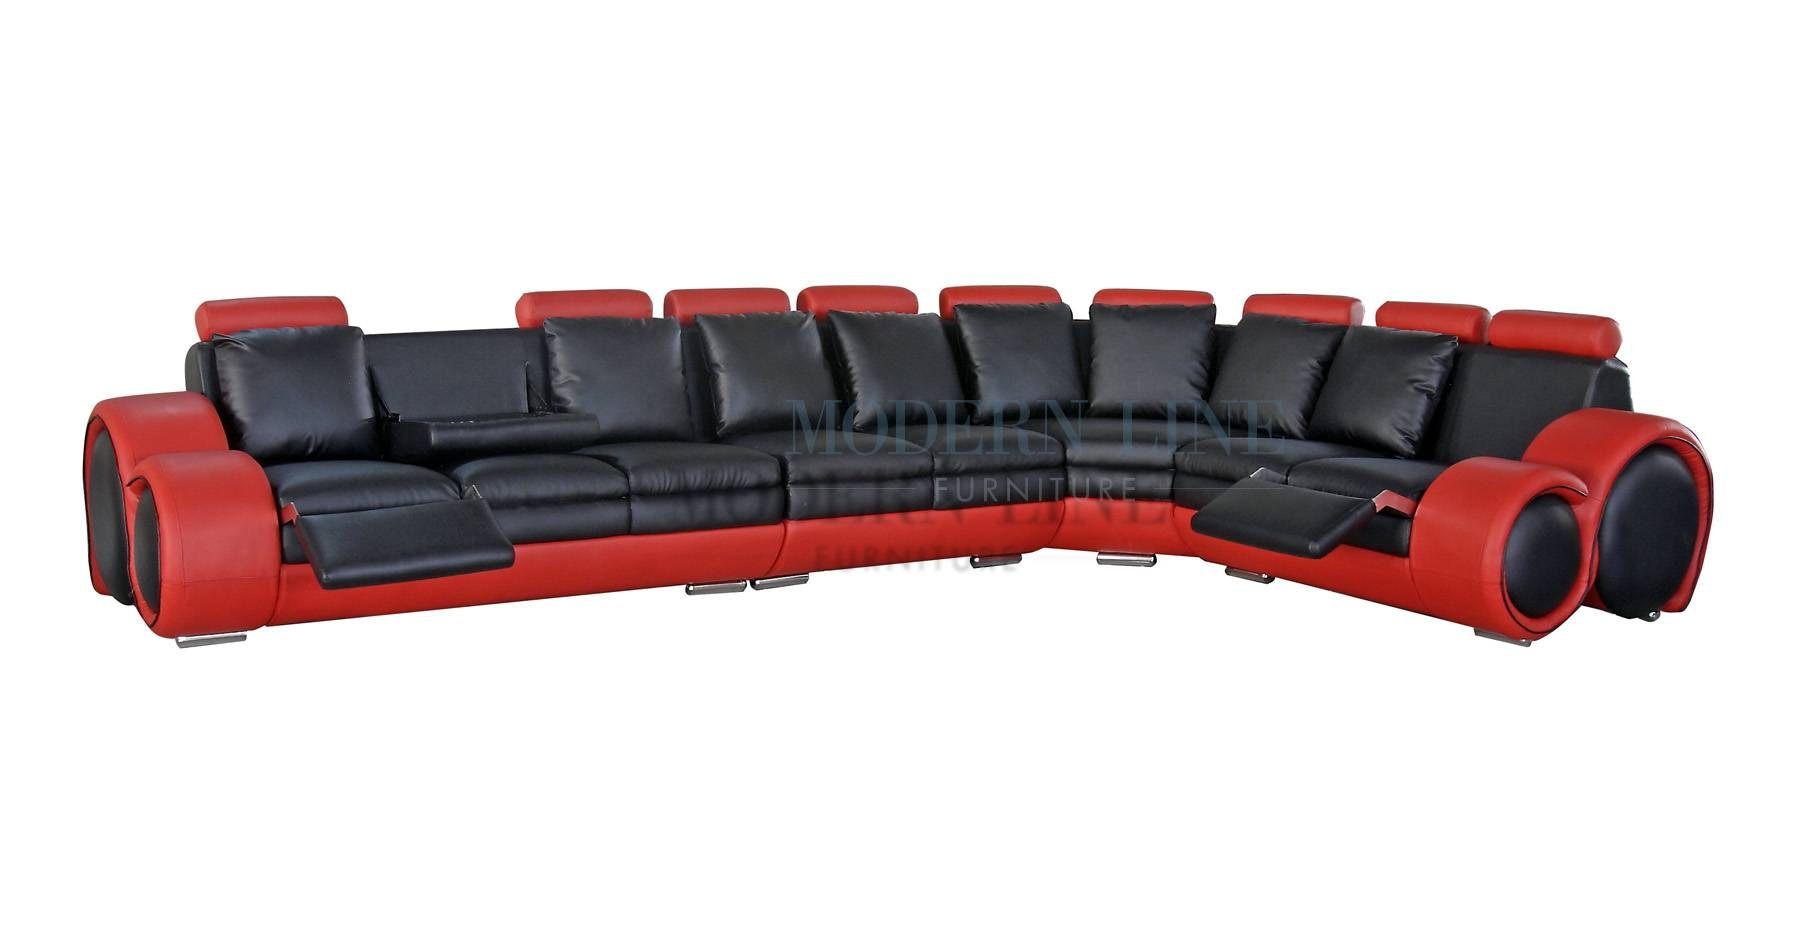 Modern Line Furniture - Commercial Furniture - Custom Made intended for Red Black Sectional Sofa (Image 19 of 30)